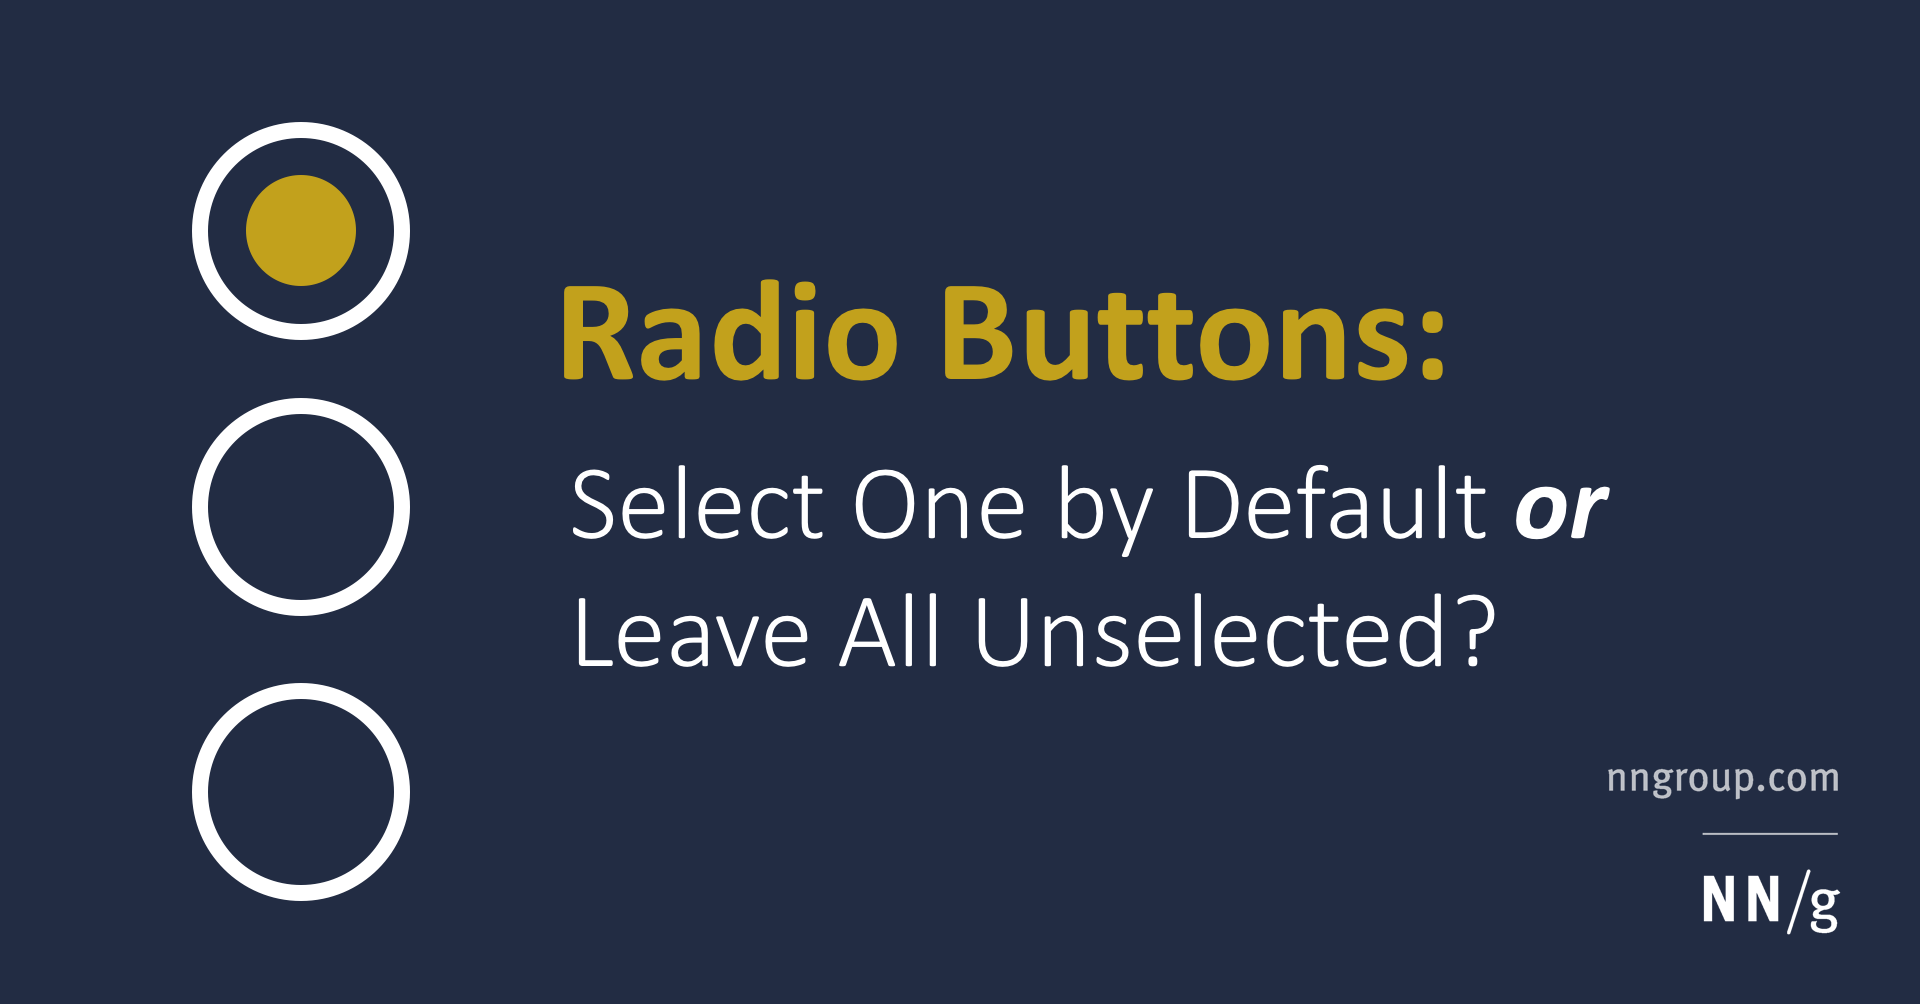 Radio Buttons: Always Select One?